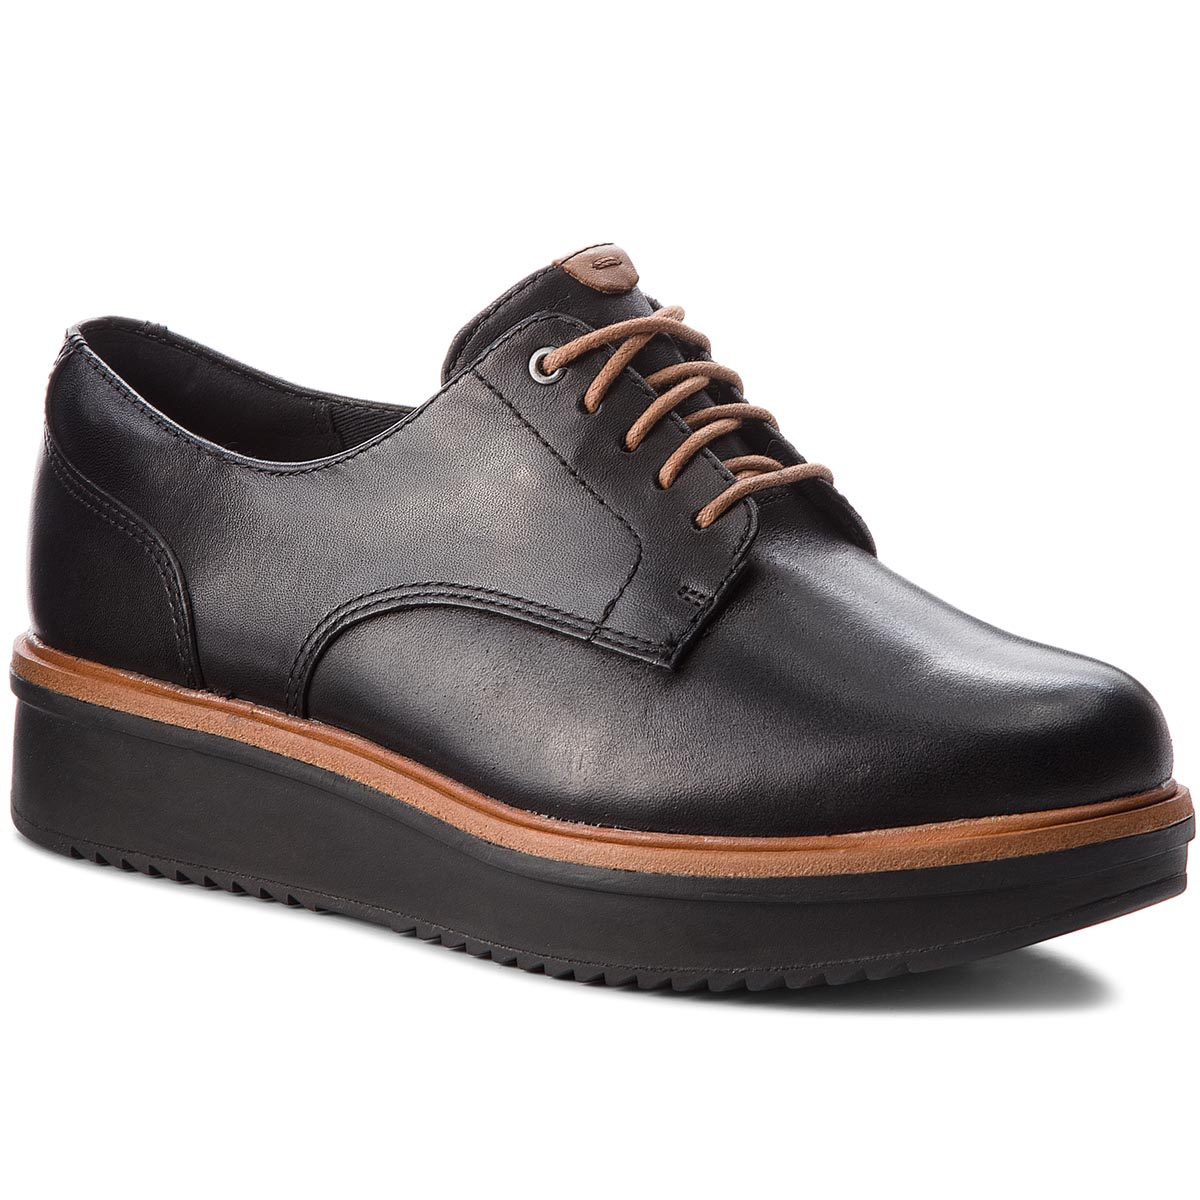 Oxford Clarks - Teadale Rhea 261284394 Black Leather imagine epantofi.ro 2021